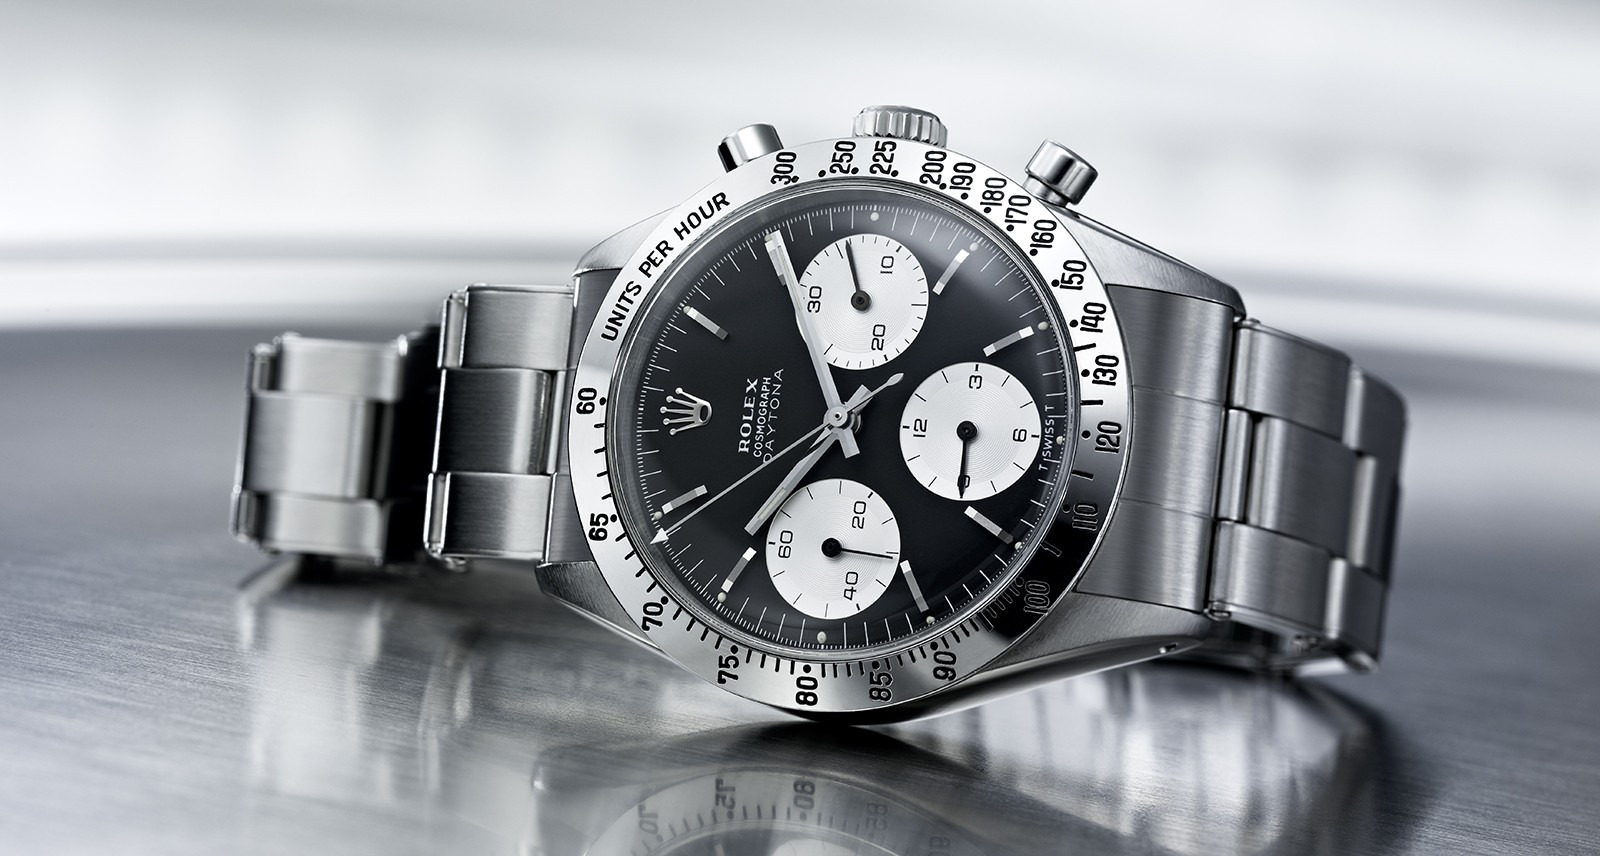 What Should I Look for When Buying an Investment-Level Watch?